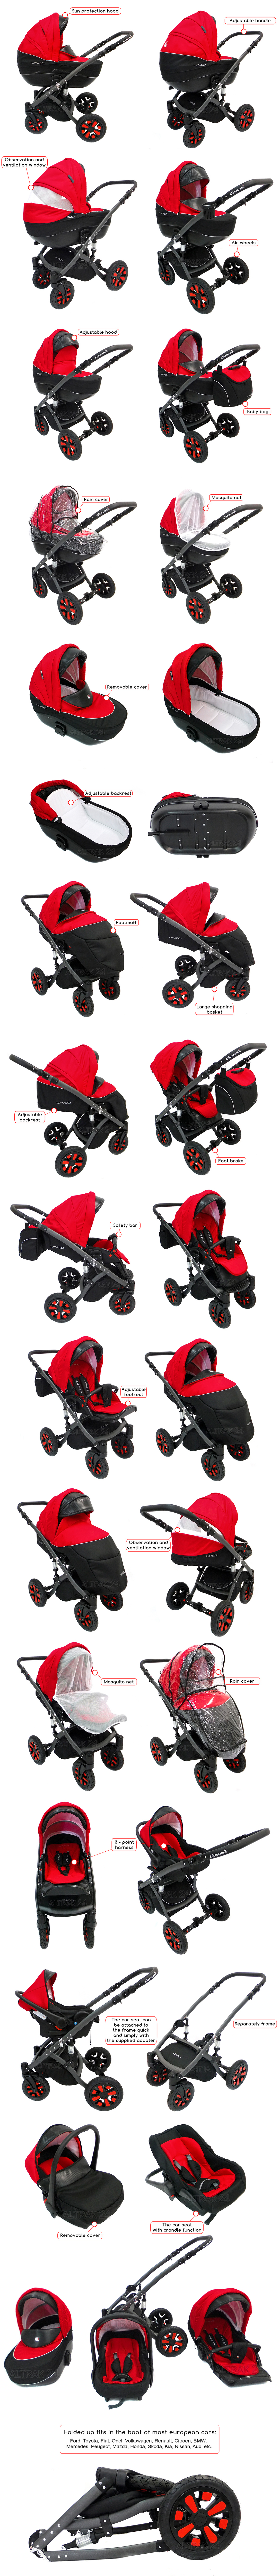 pram stroller buggy pushchair travel in commi unico swivel functionality and equipment